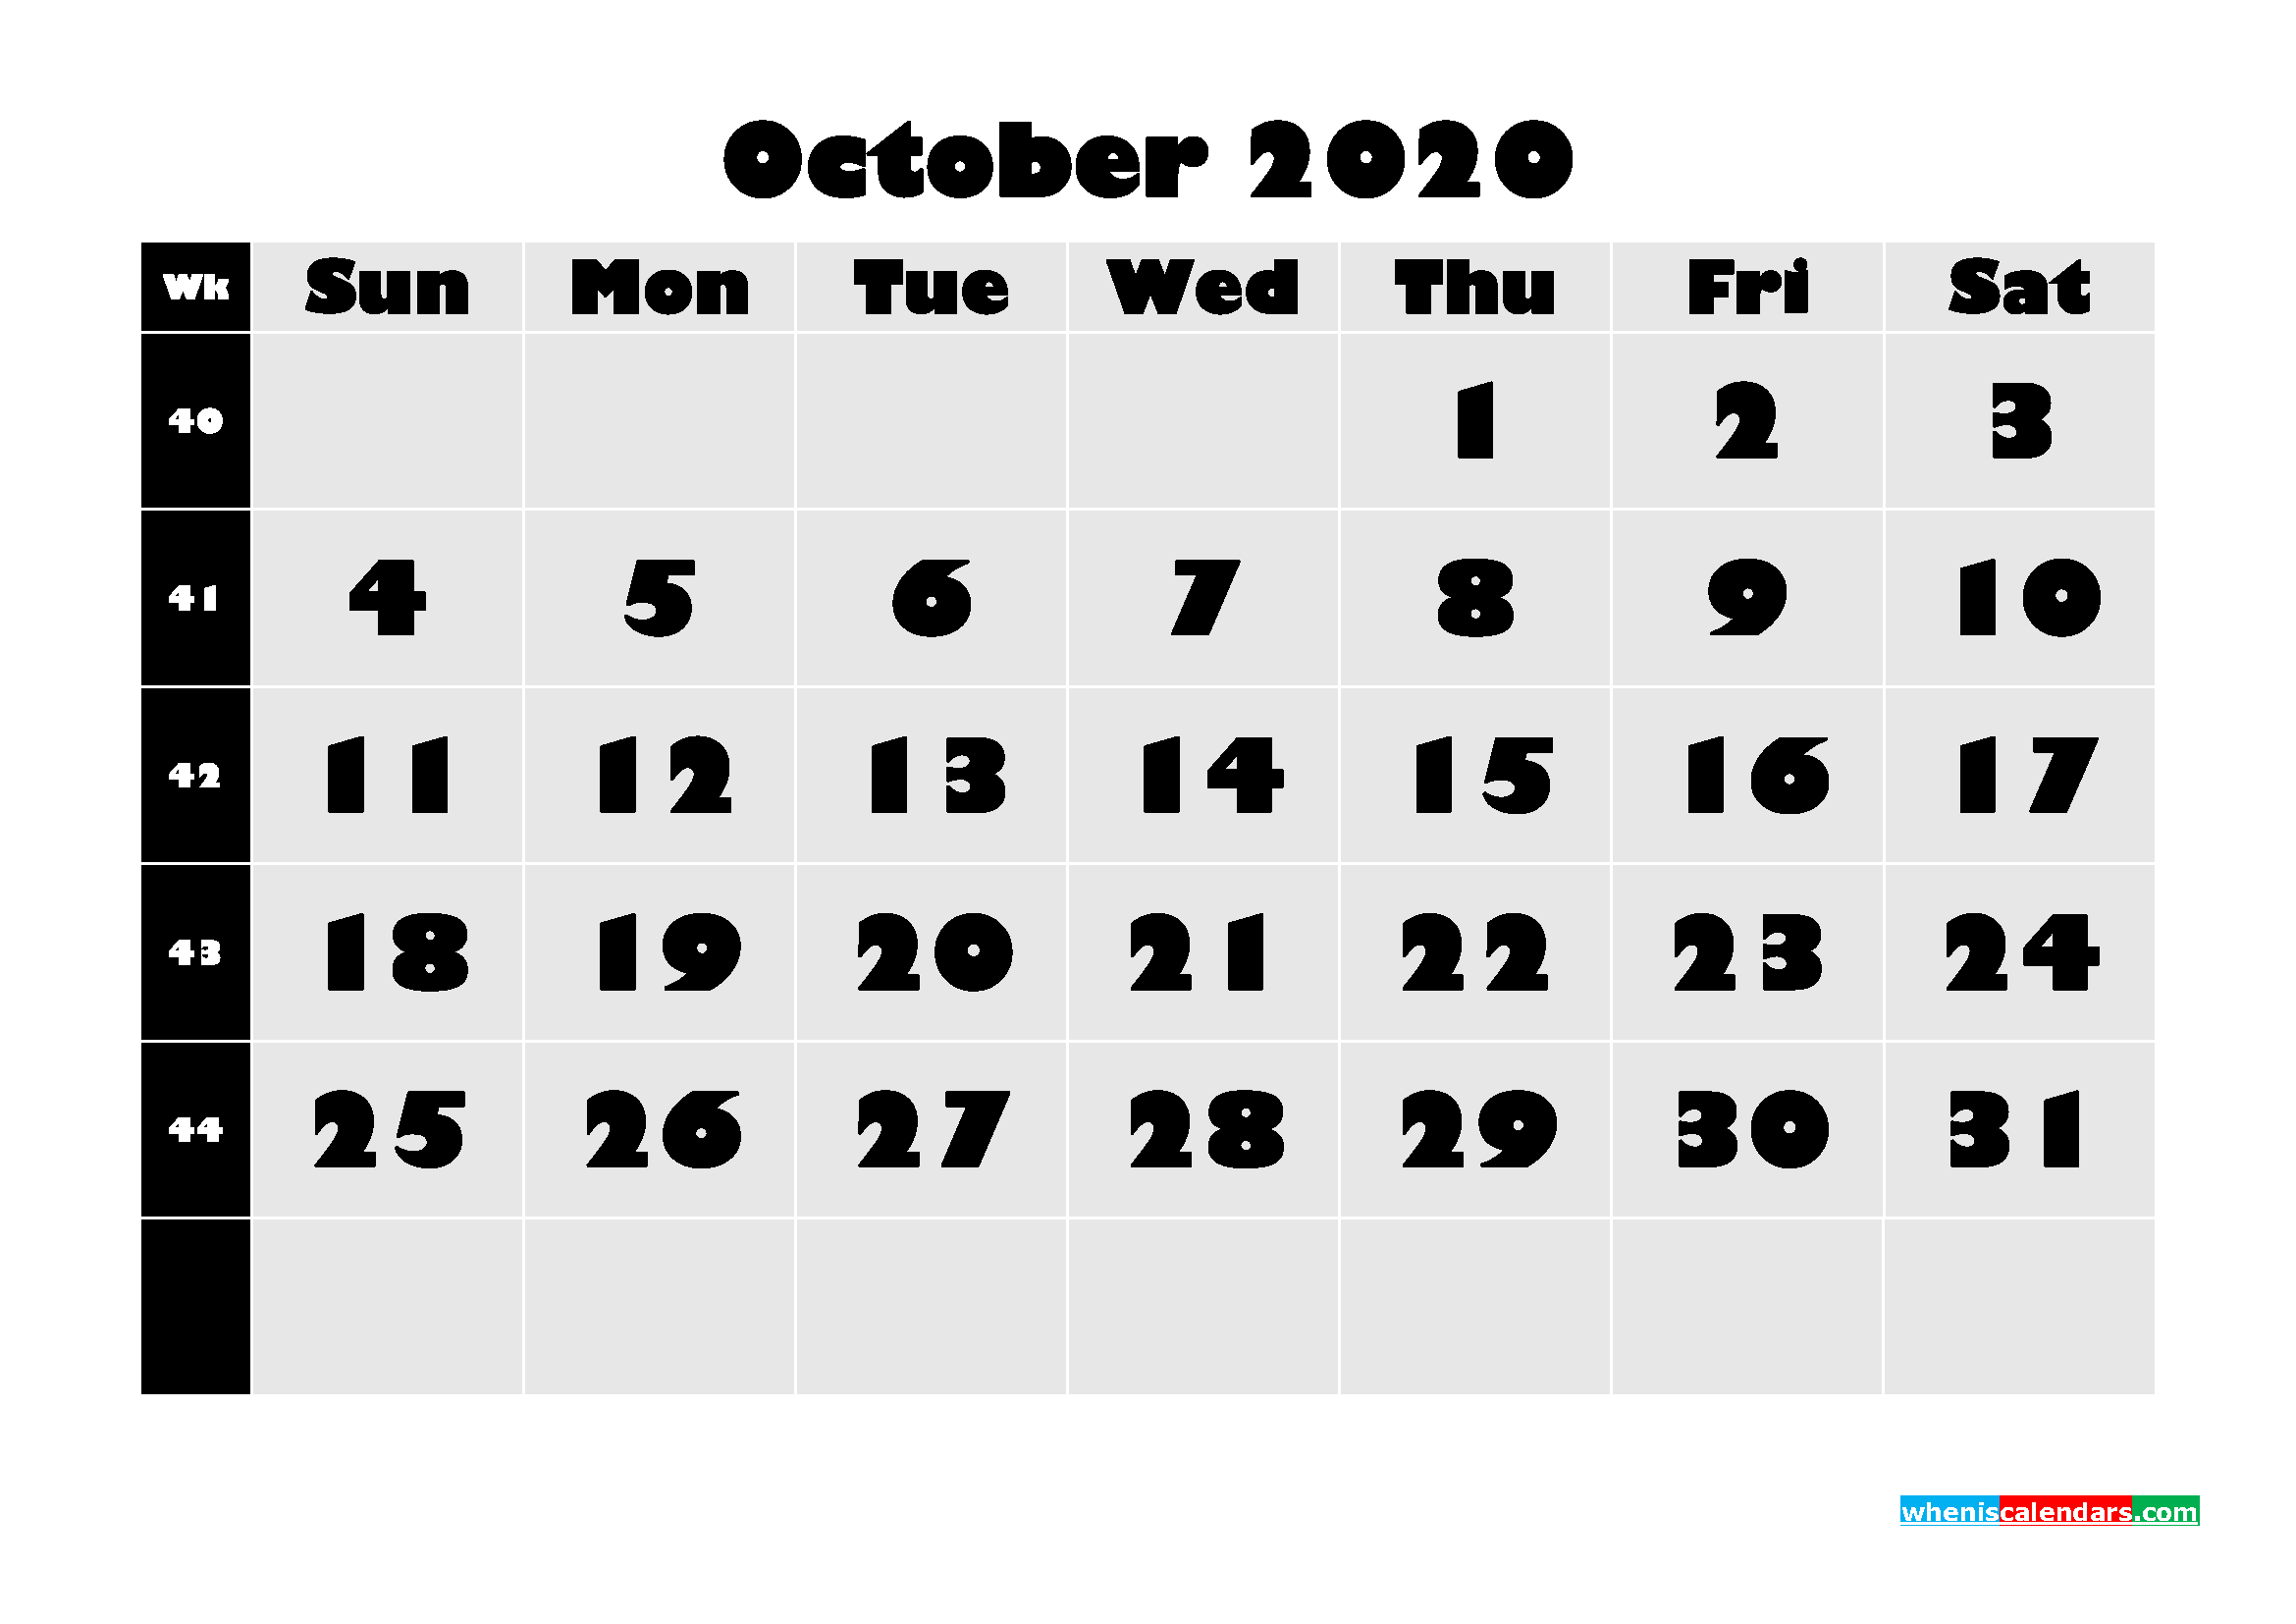 Monthly Printable Calendar 2020 October with Week Numbers